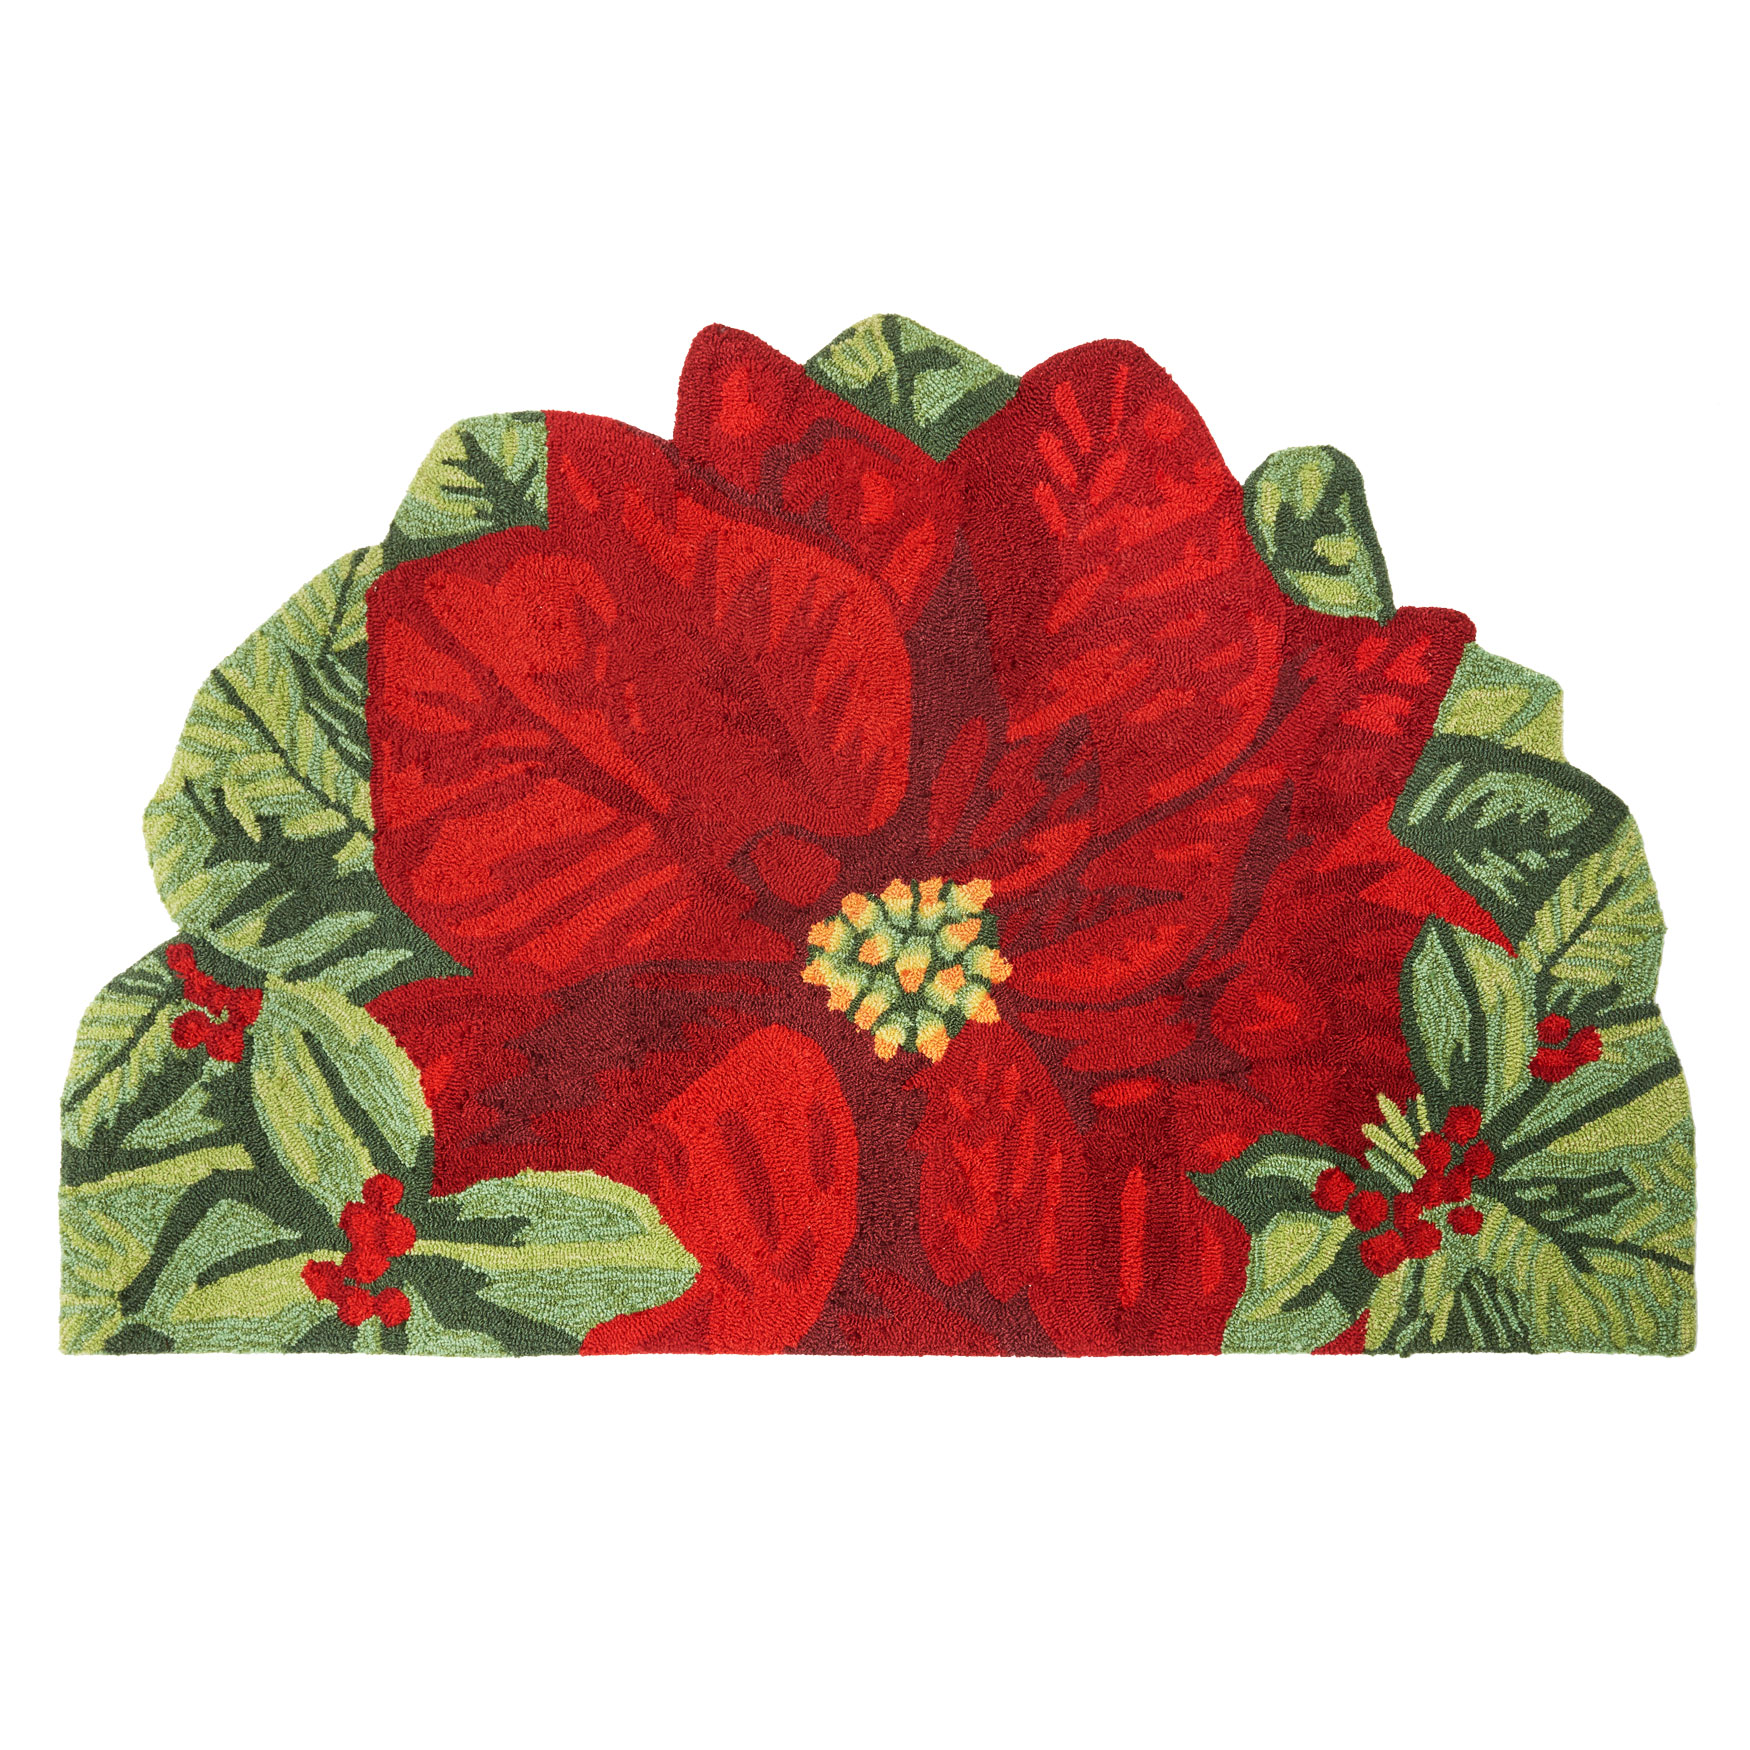 Small Half-Round Poinsettia Mat, MULTI